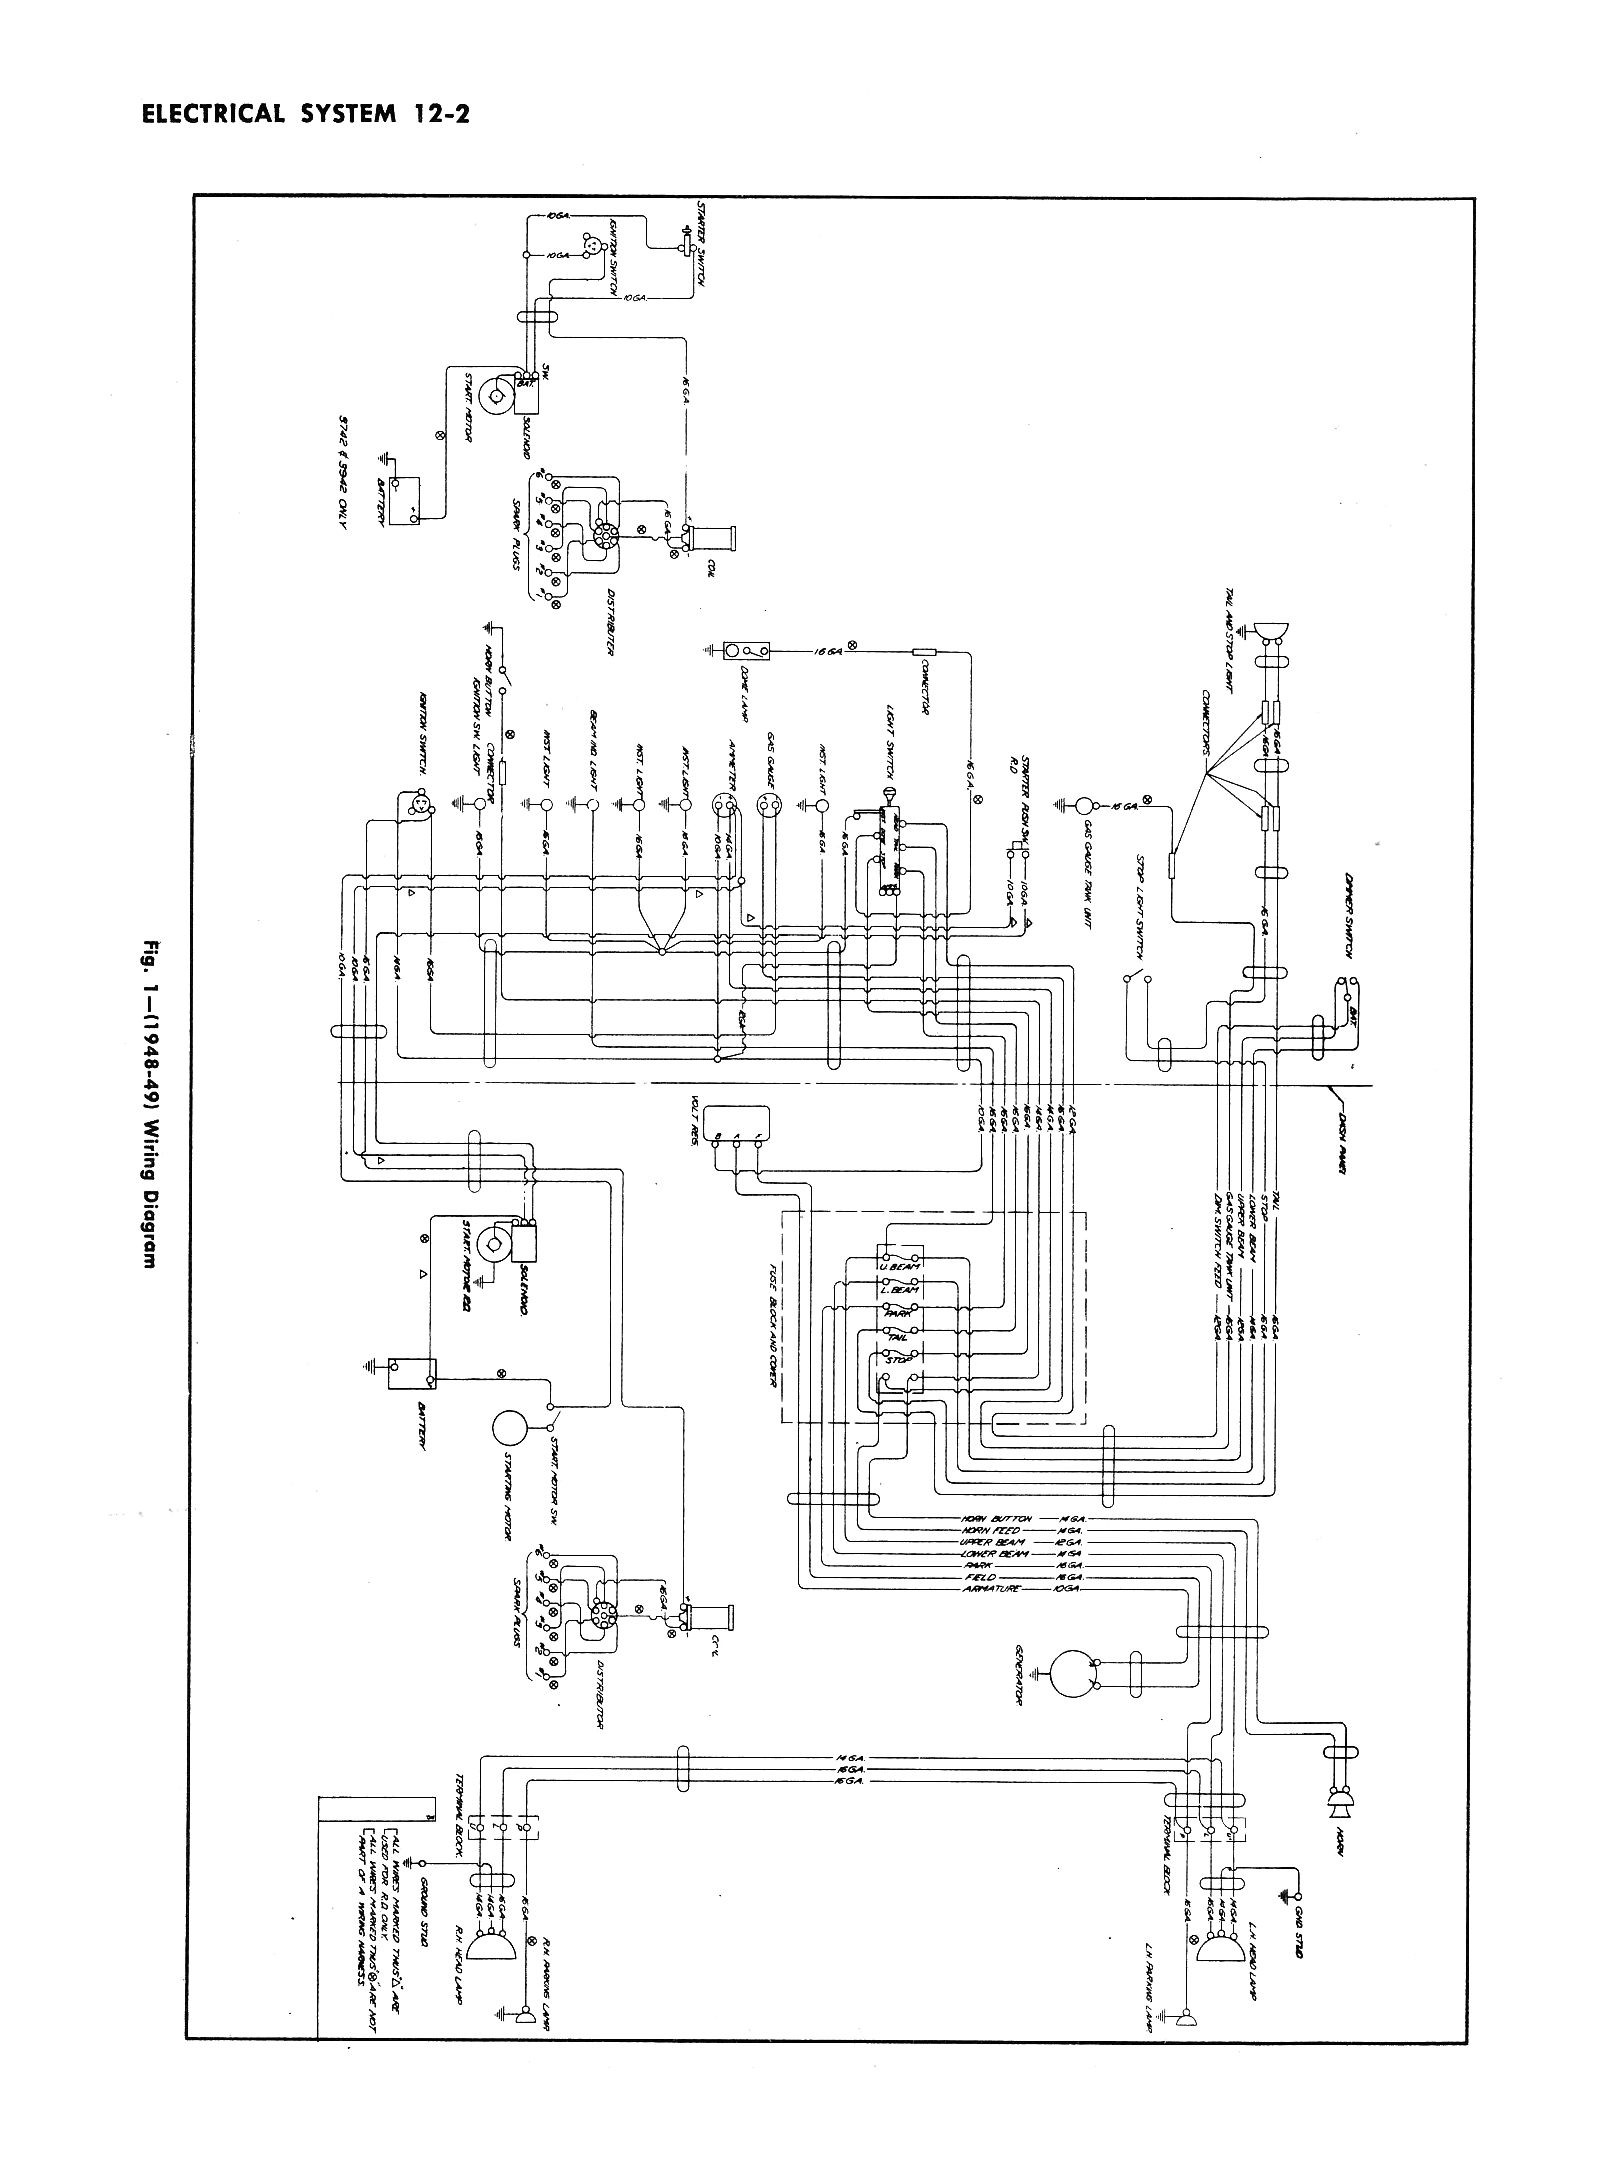 Showthread together with Wiring also 7nhd5 Need Wireing Diagram Wiper Motor Switch besides Chevrolet 2014 5 3 Engine Diagram moreover Wiring Diagram For 1962 Chevy Truck. on 1962 chevy impala wiring diagram